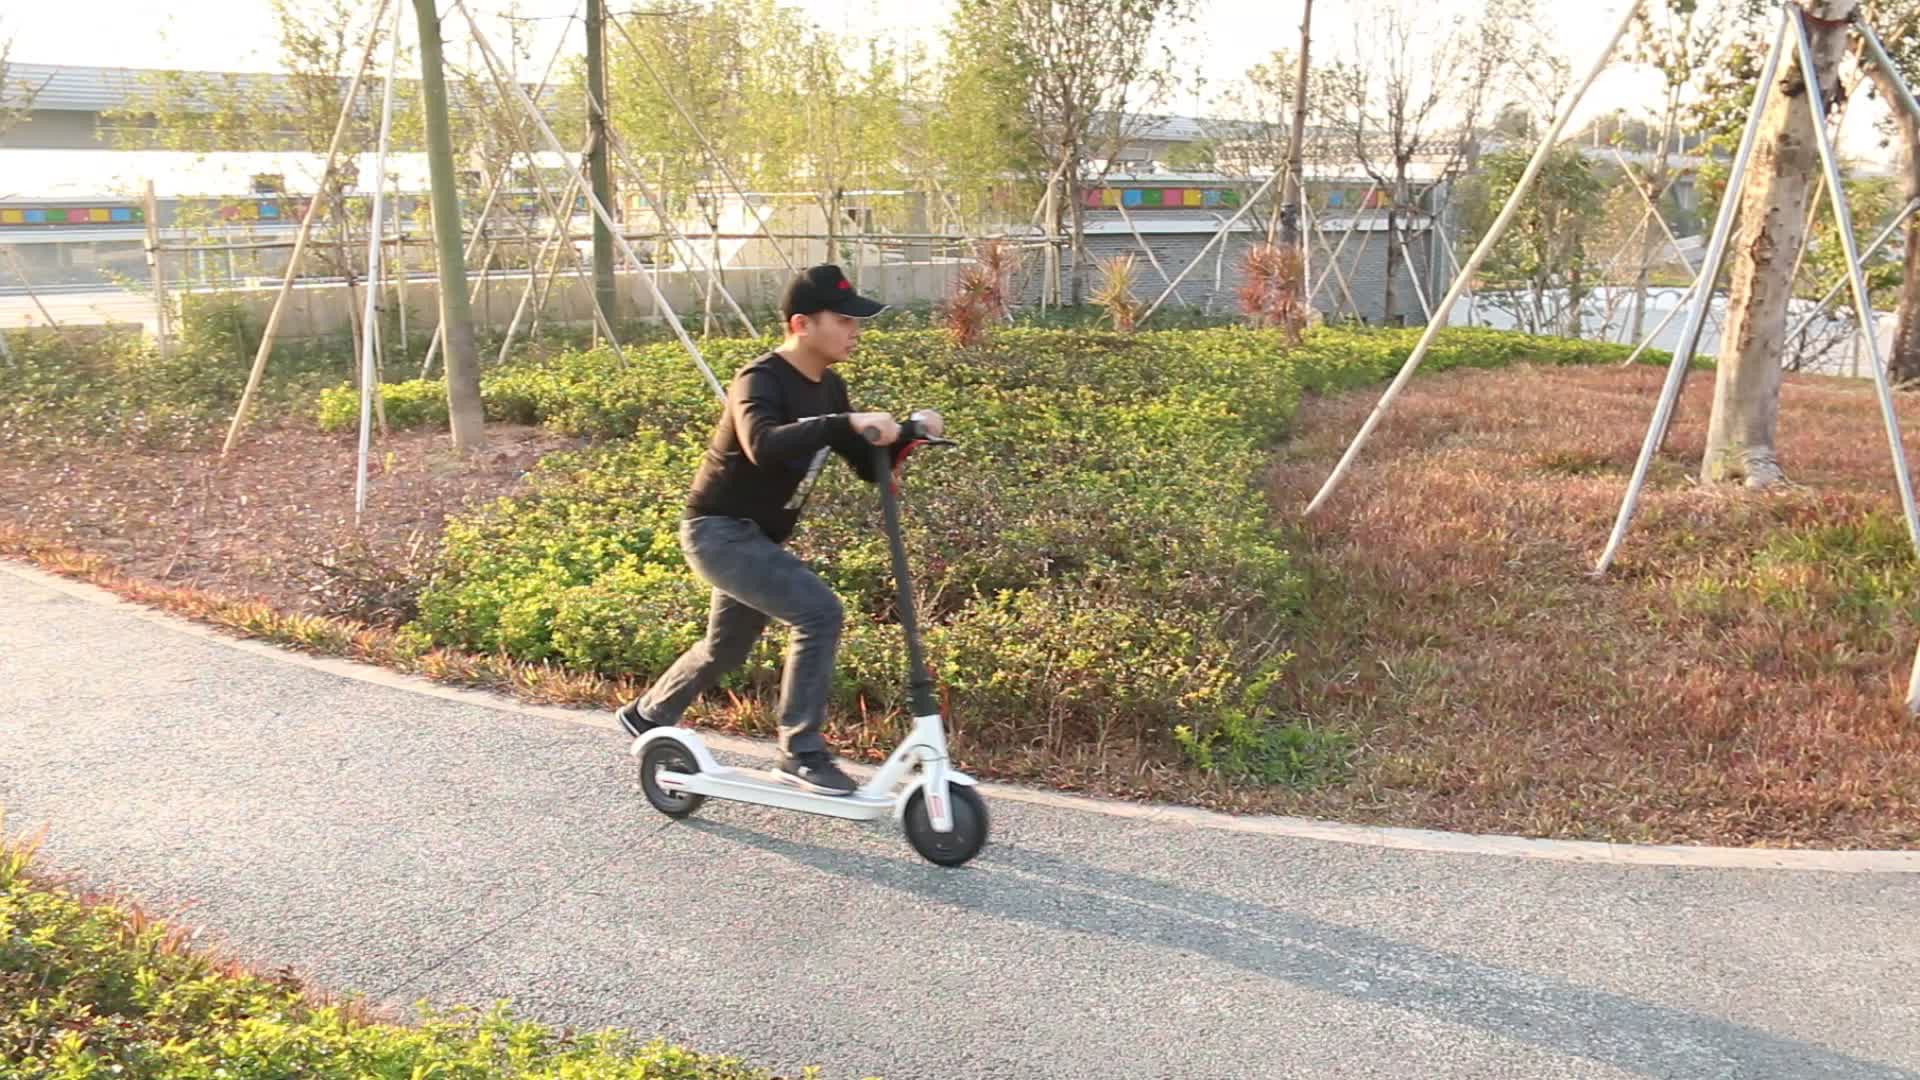 Wholesale good quality best cheaper price neutral xiaomi mijia M365 electric scooter with spare tyres